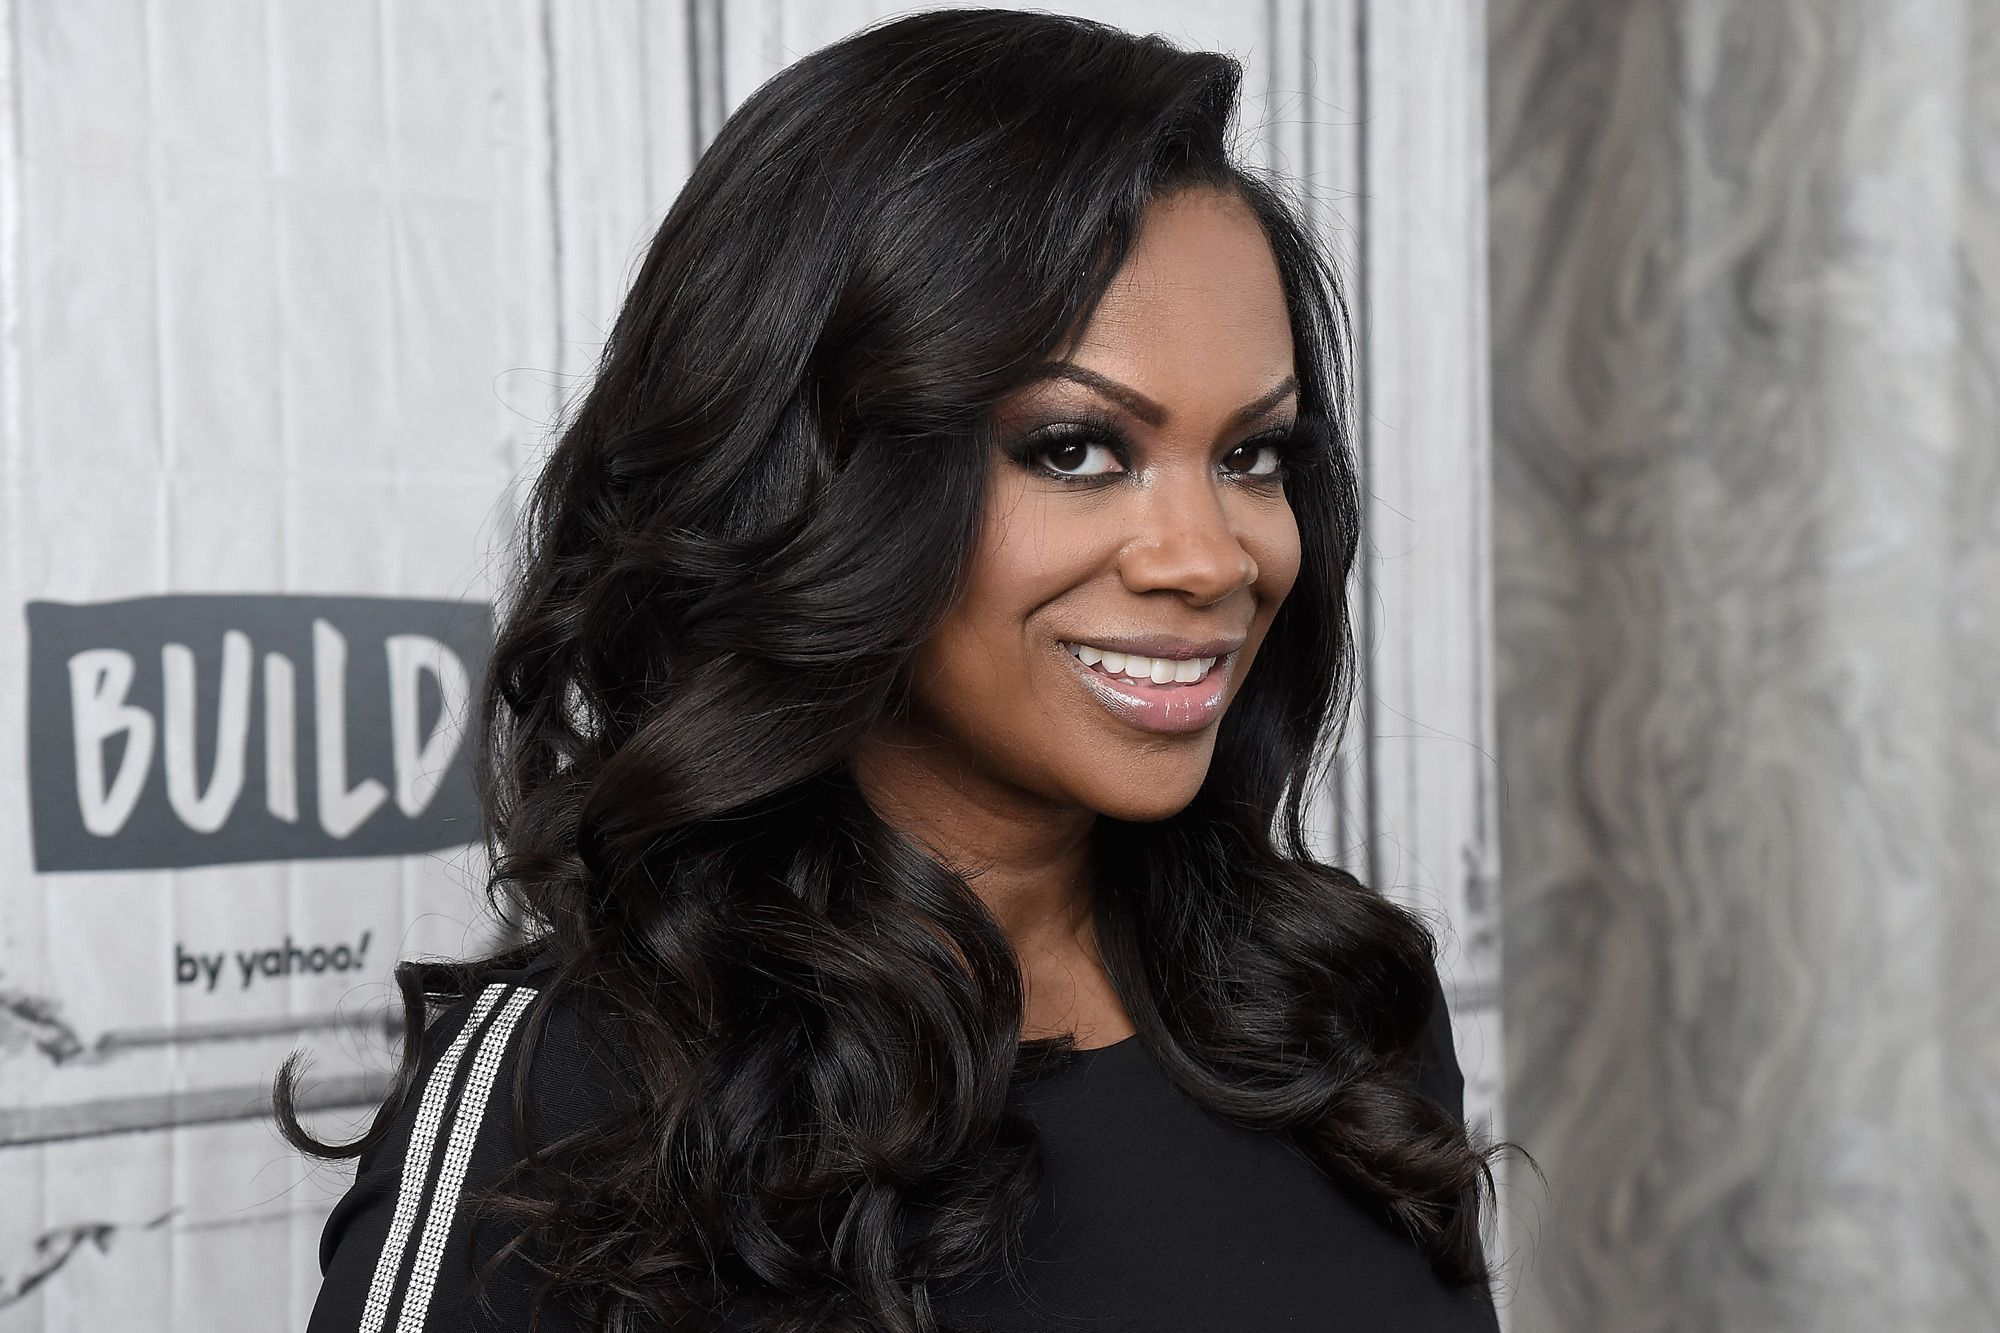 Kandi Burruss Shares A Jaw-Dropping Look That Has Fans Drooling – Check Out The Vintage, Pinup Vibes She's Spreading